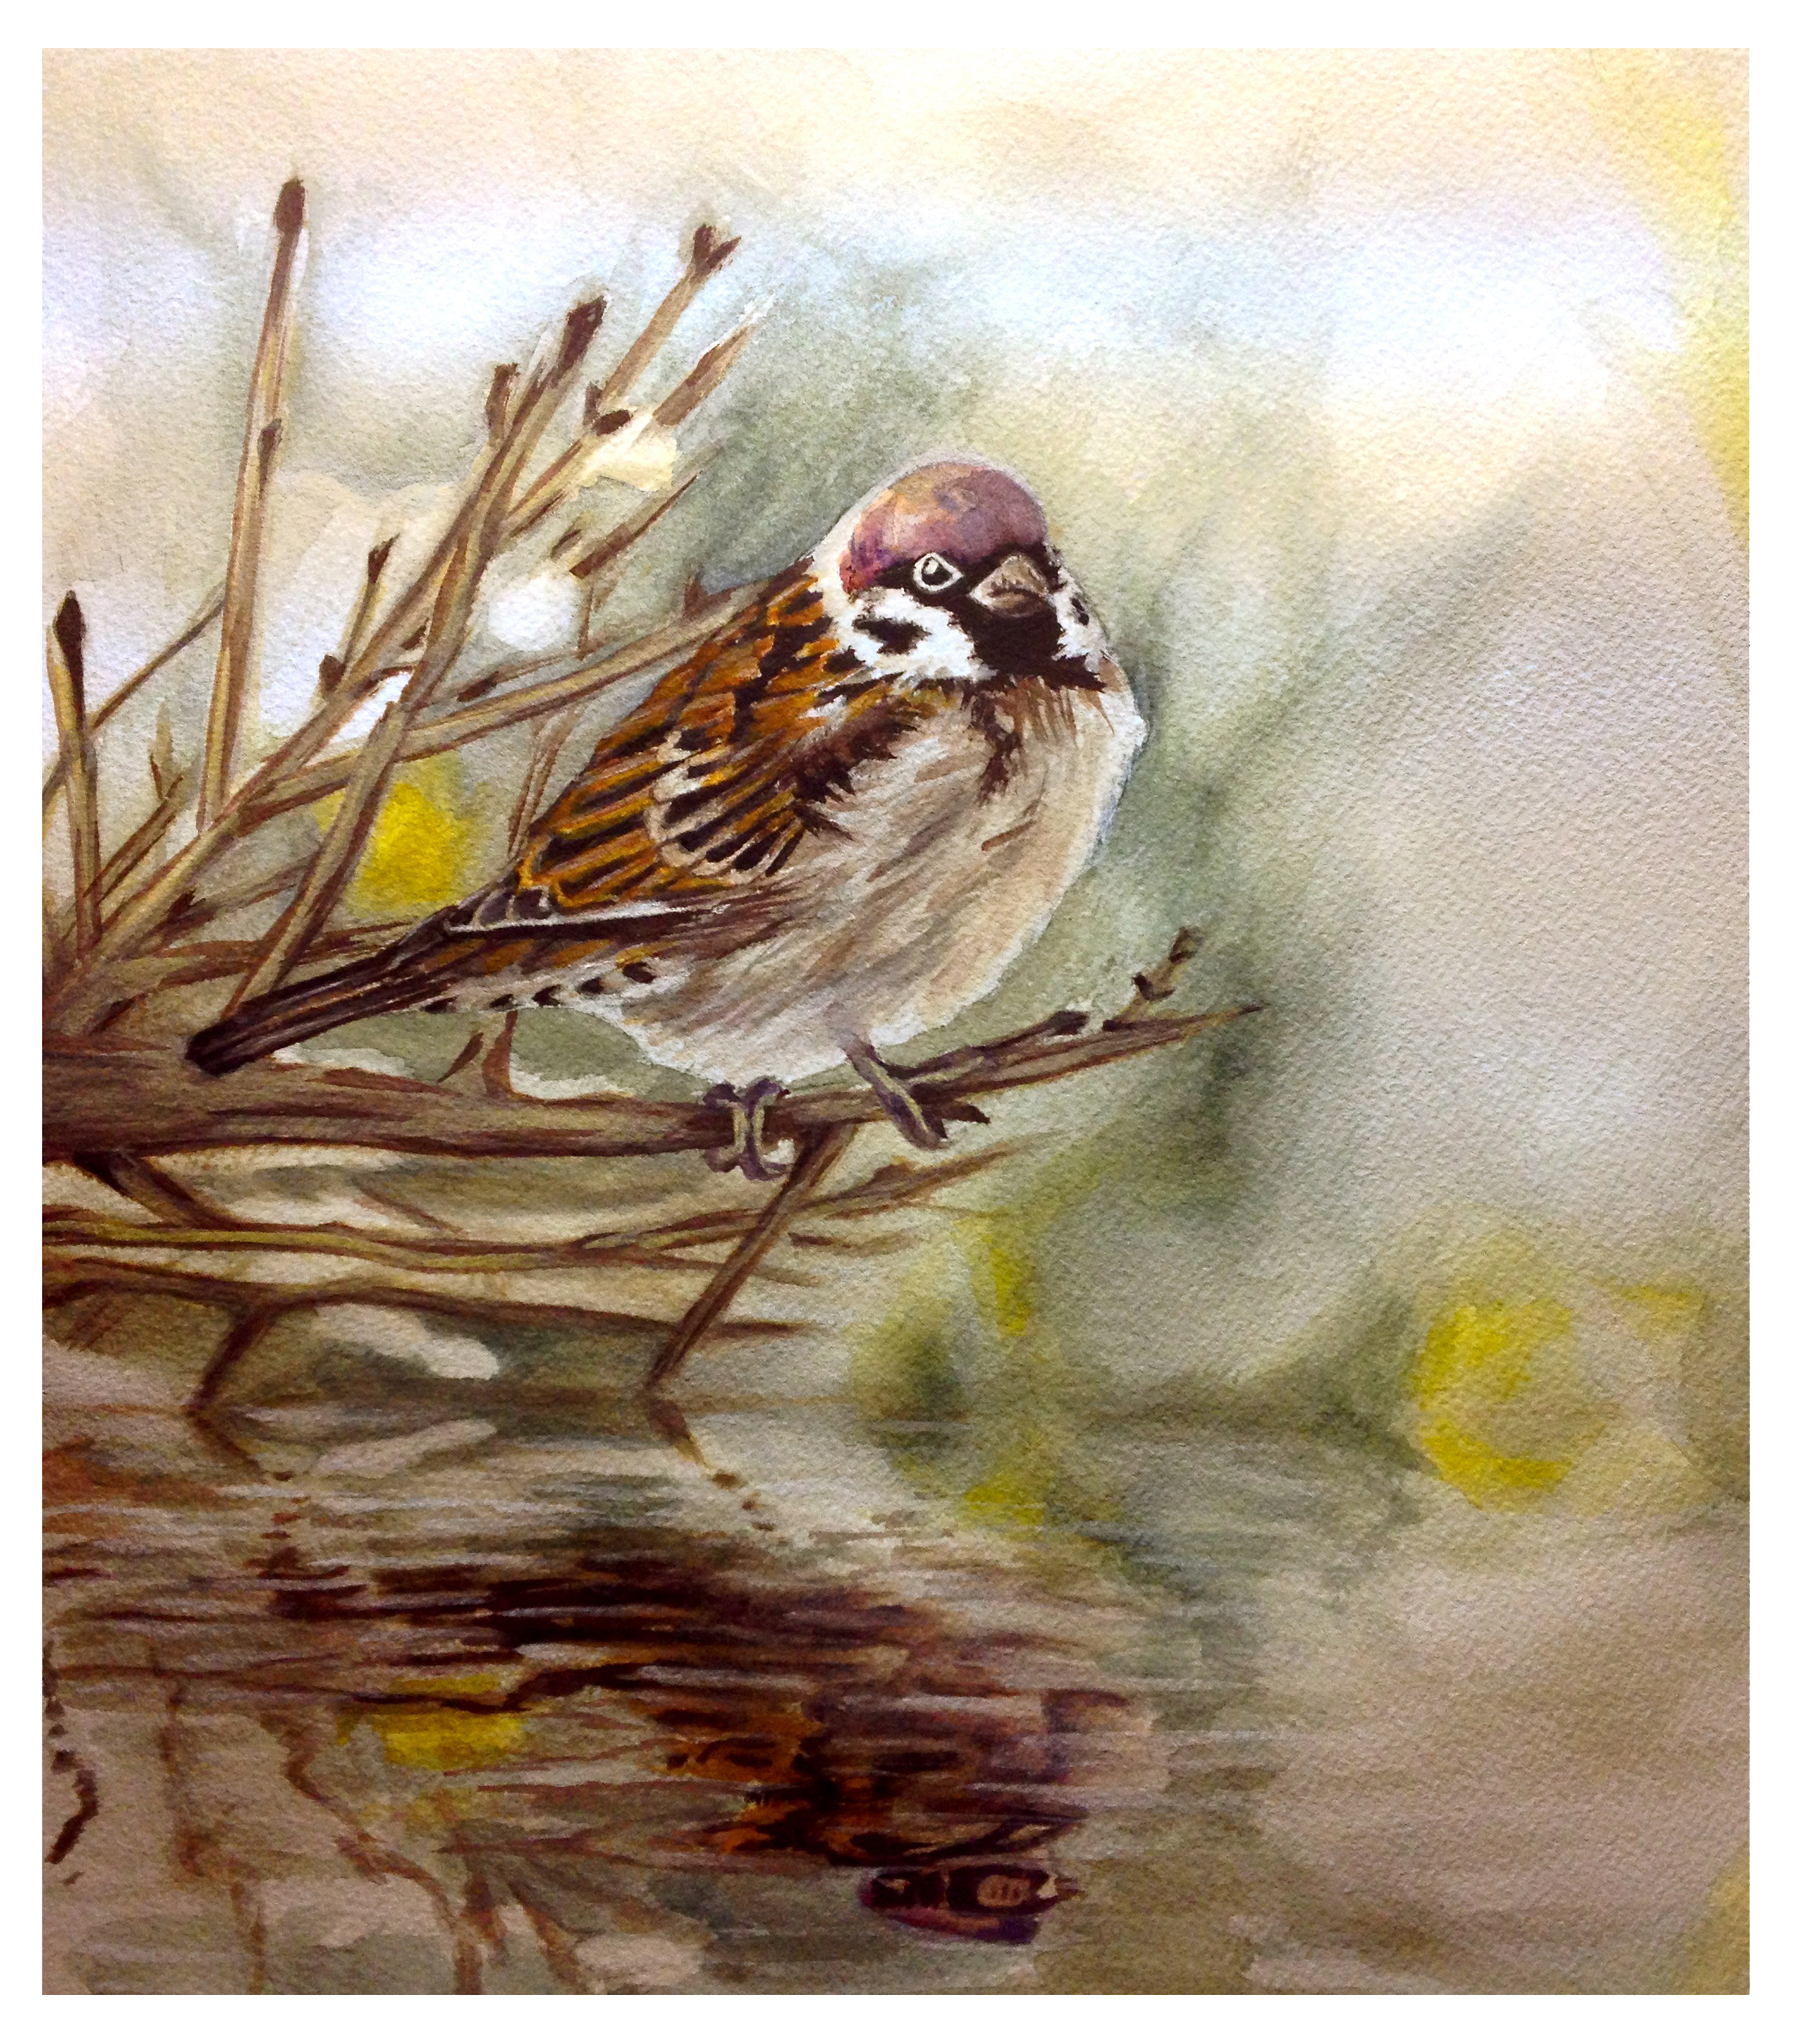 Watercolor-Bird-Edited.jpg